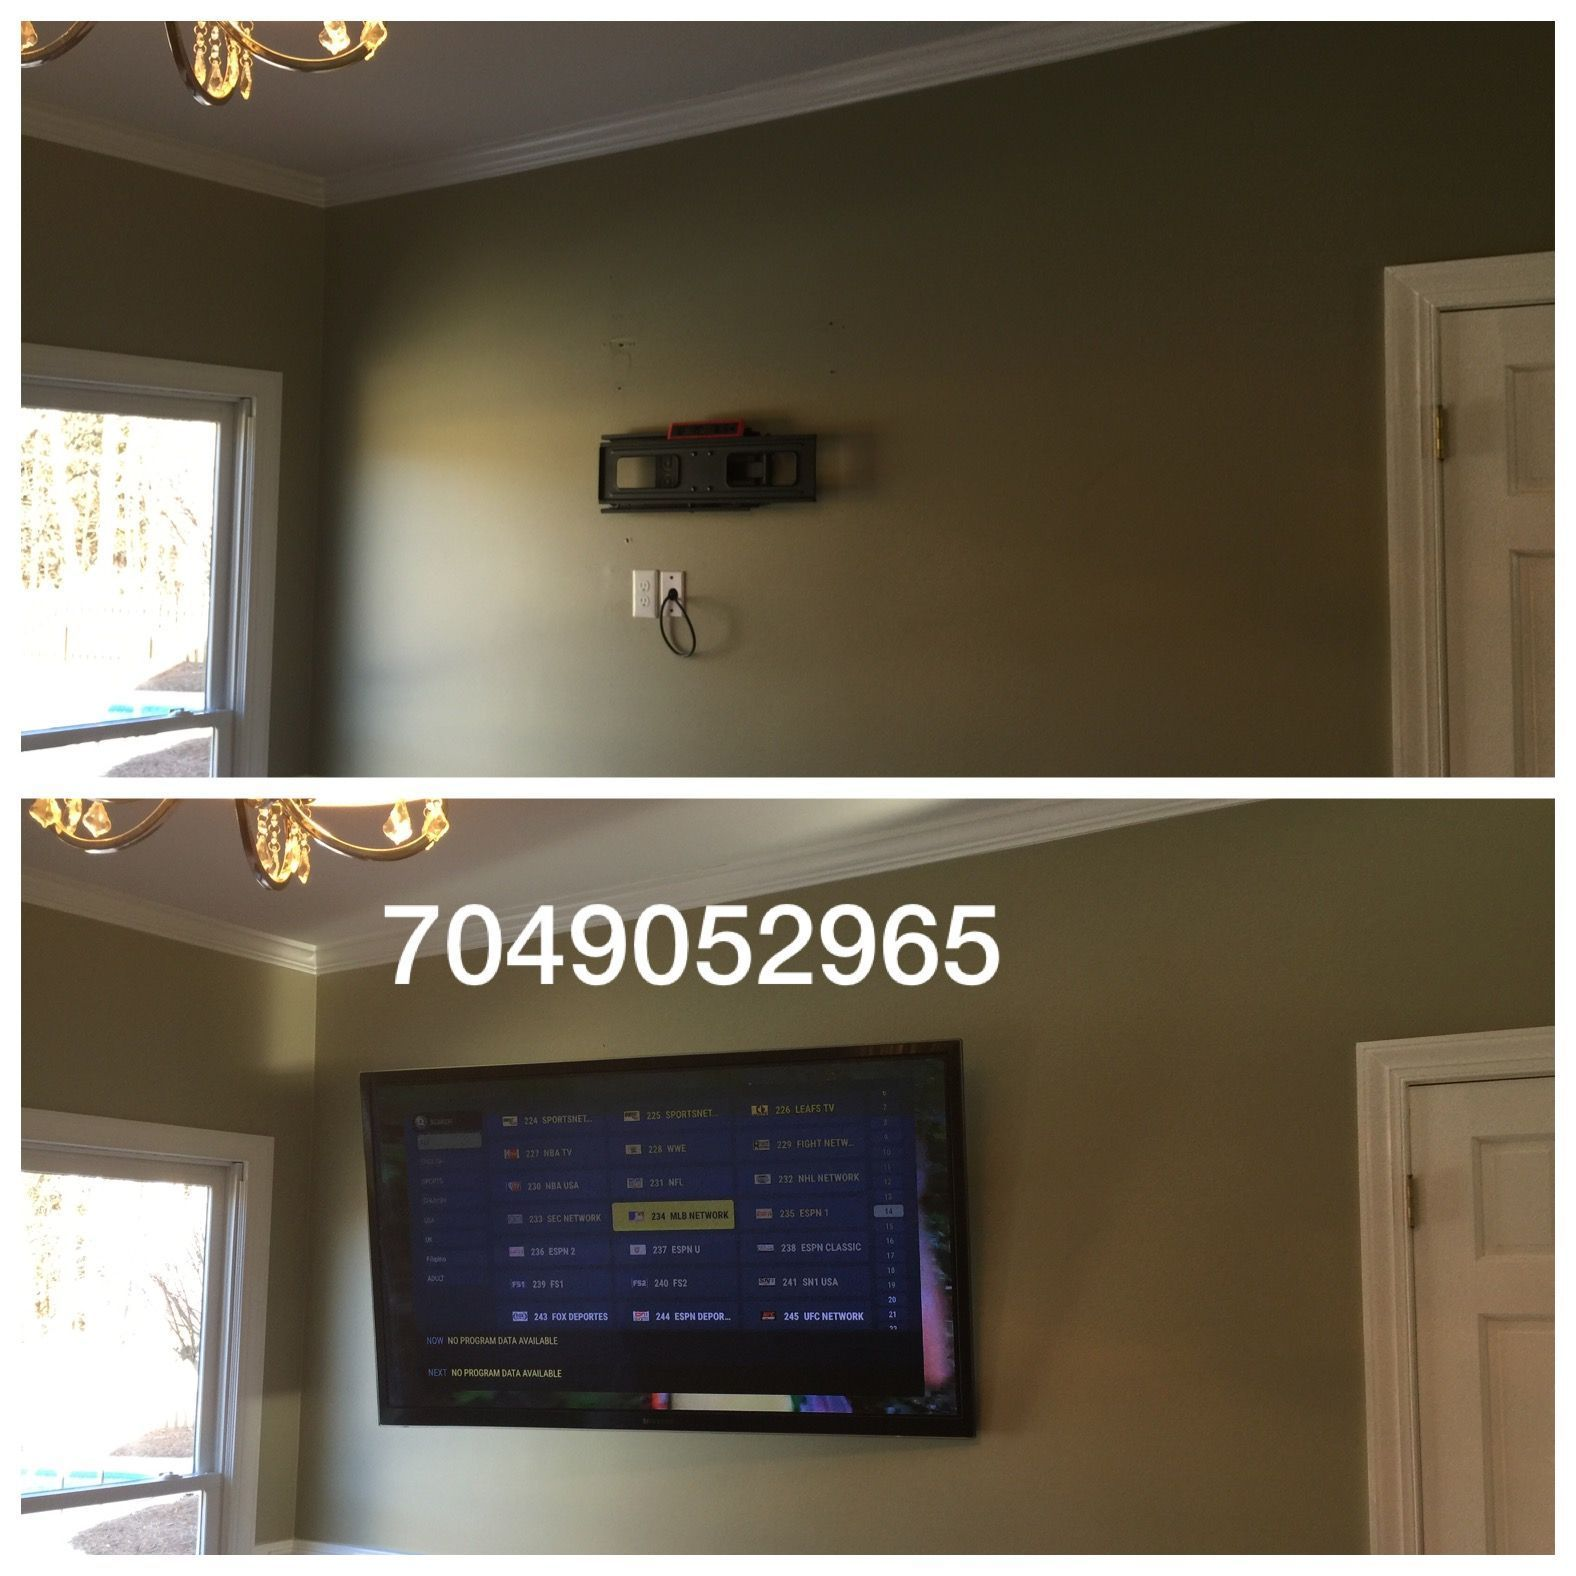 full service home theater and home wiring services we are expanding rh pinterest com Small Home Theater Room Dimensions Custom Home Theater Rooms